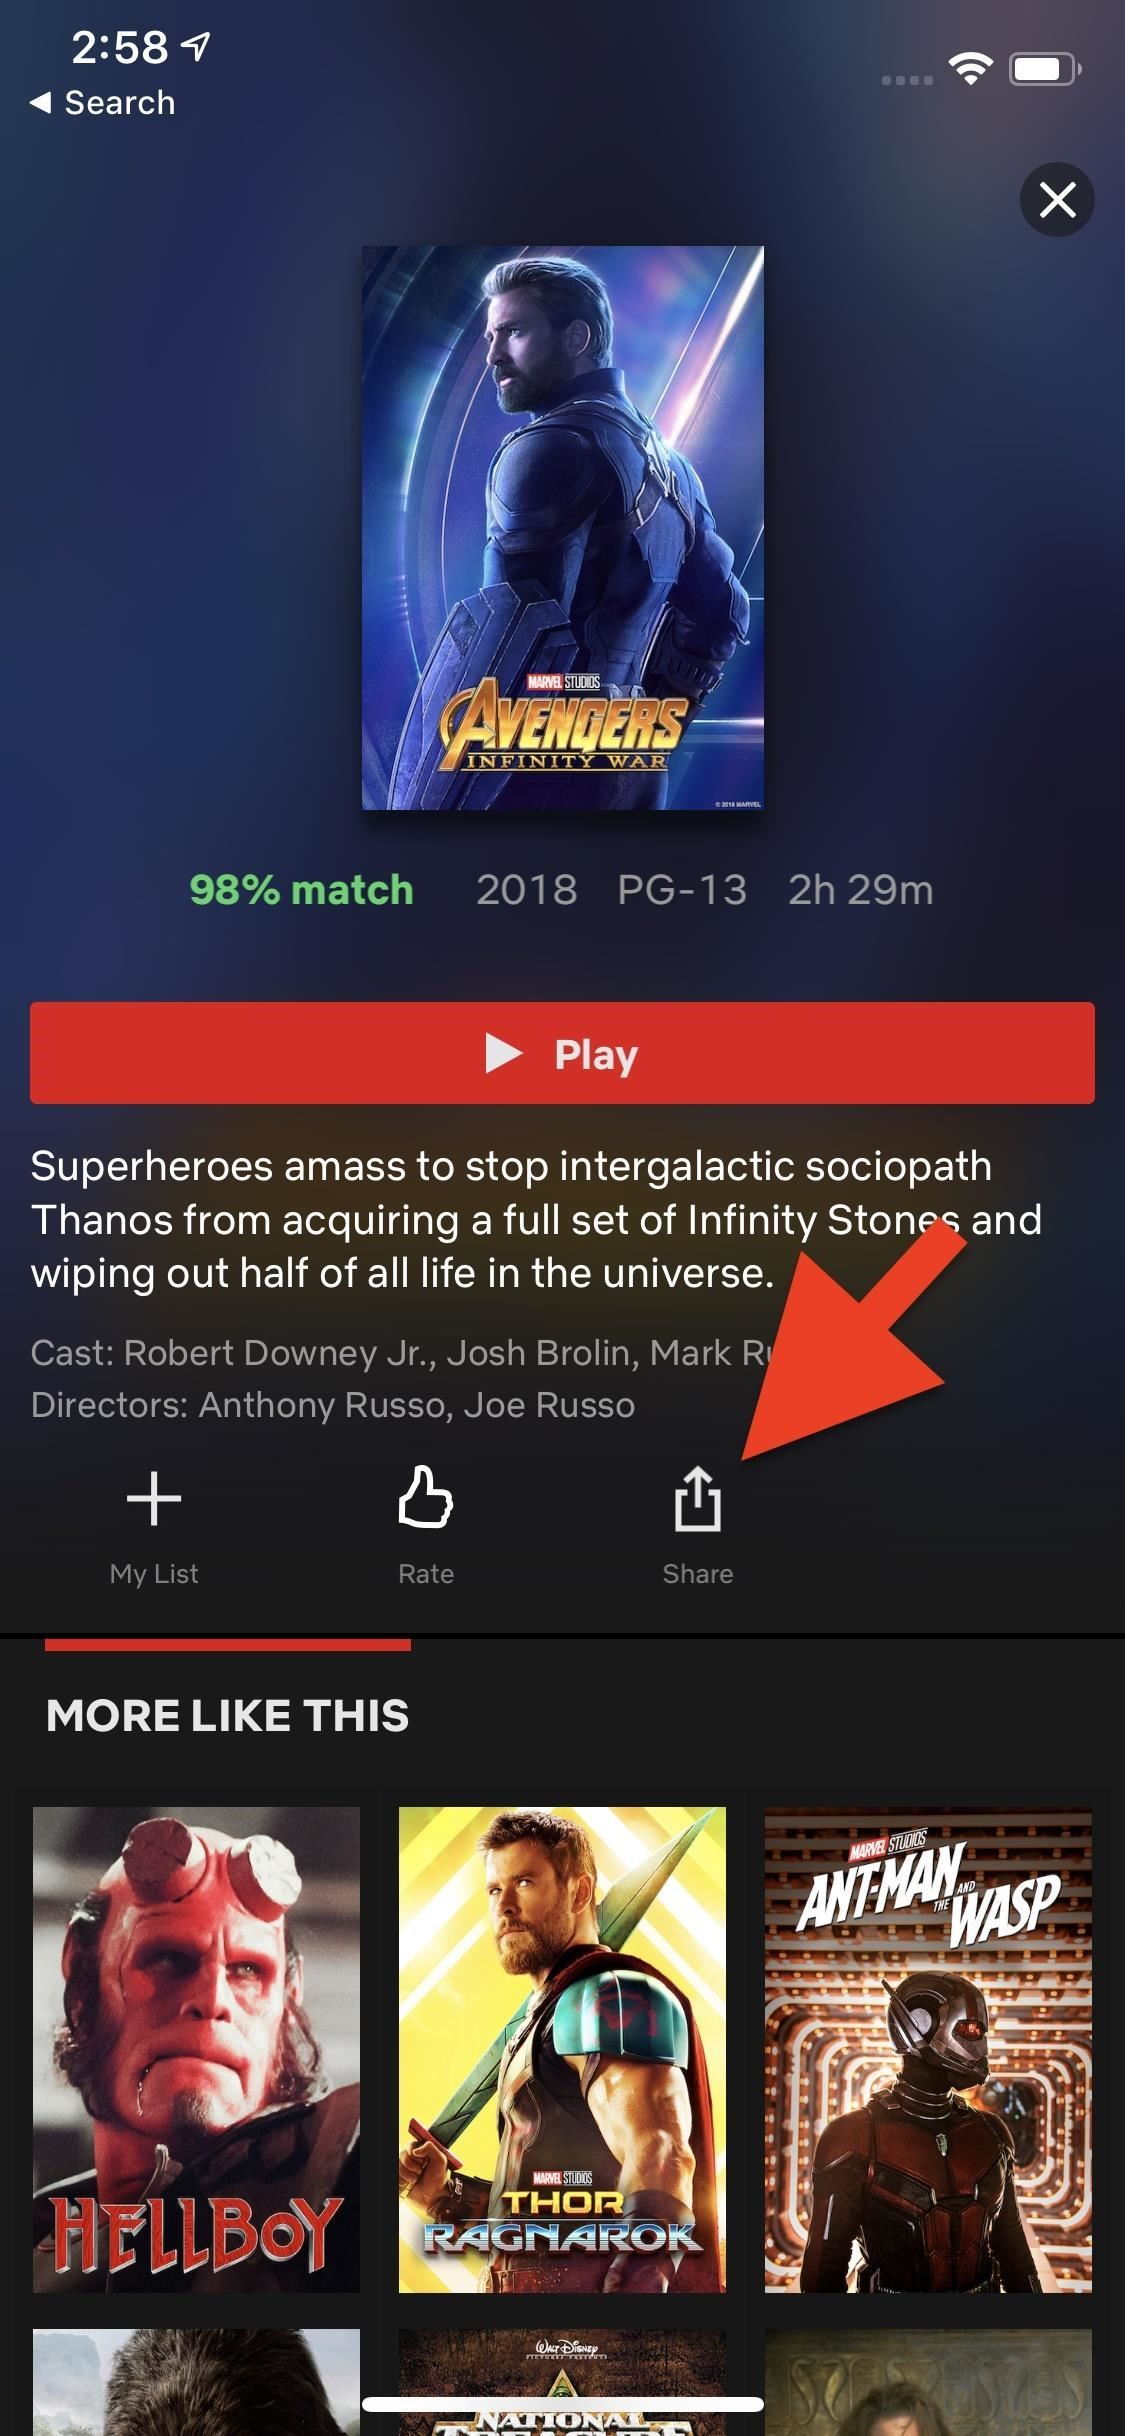 Share a Netflix Video You're About to Watch to Your Instagram Story So Friends Can Watch with You